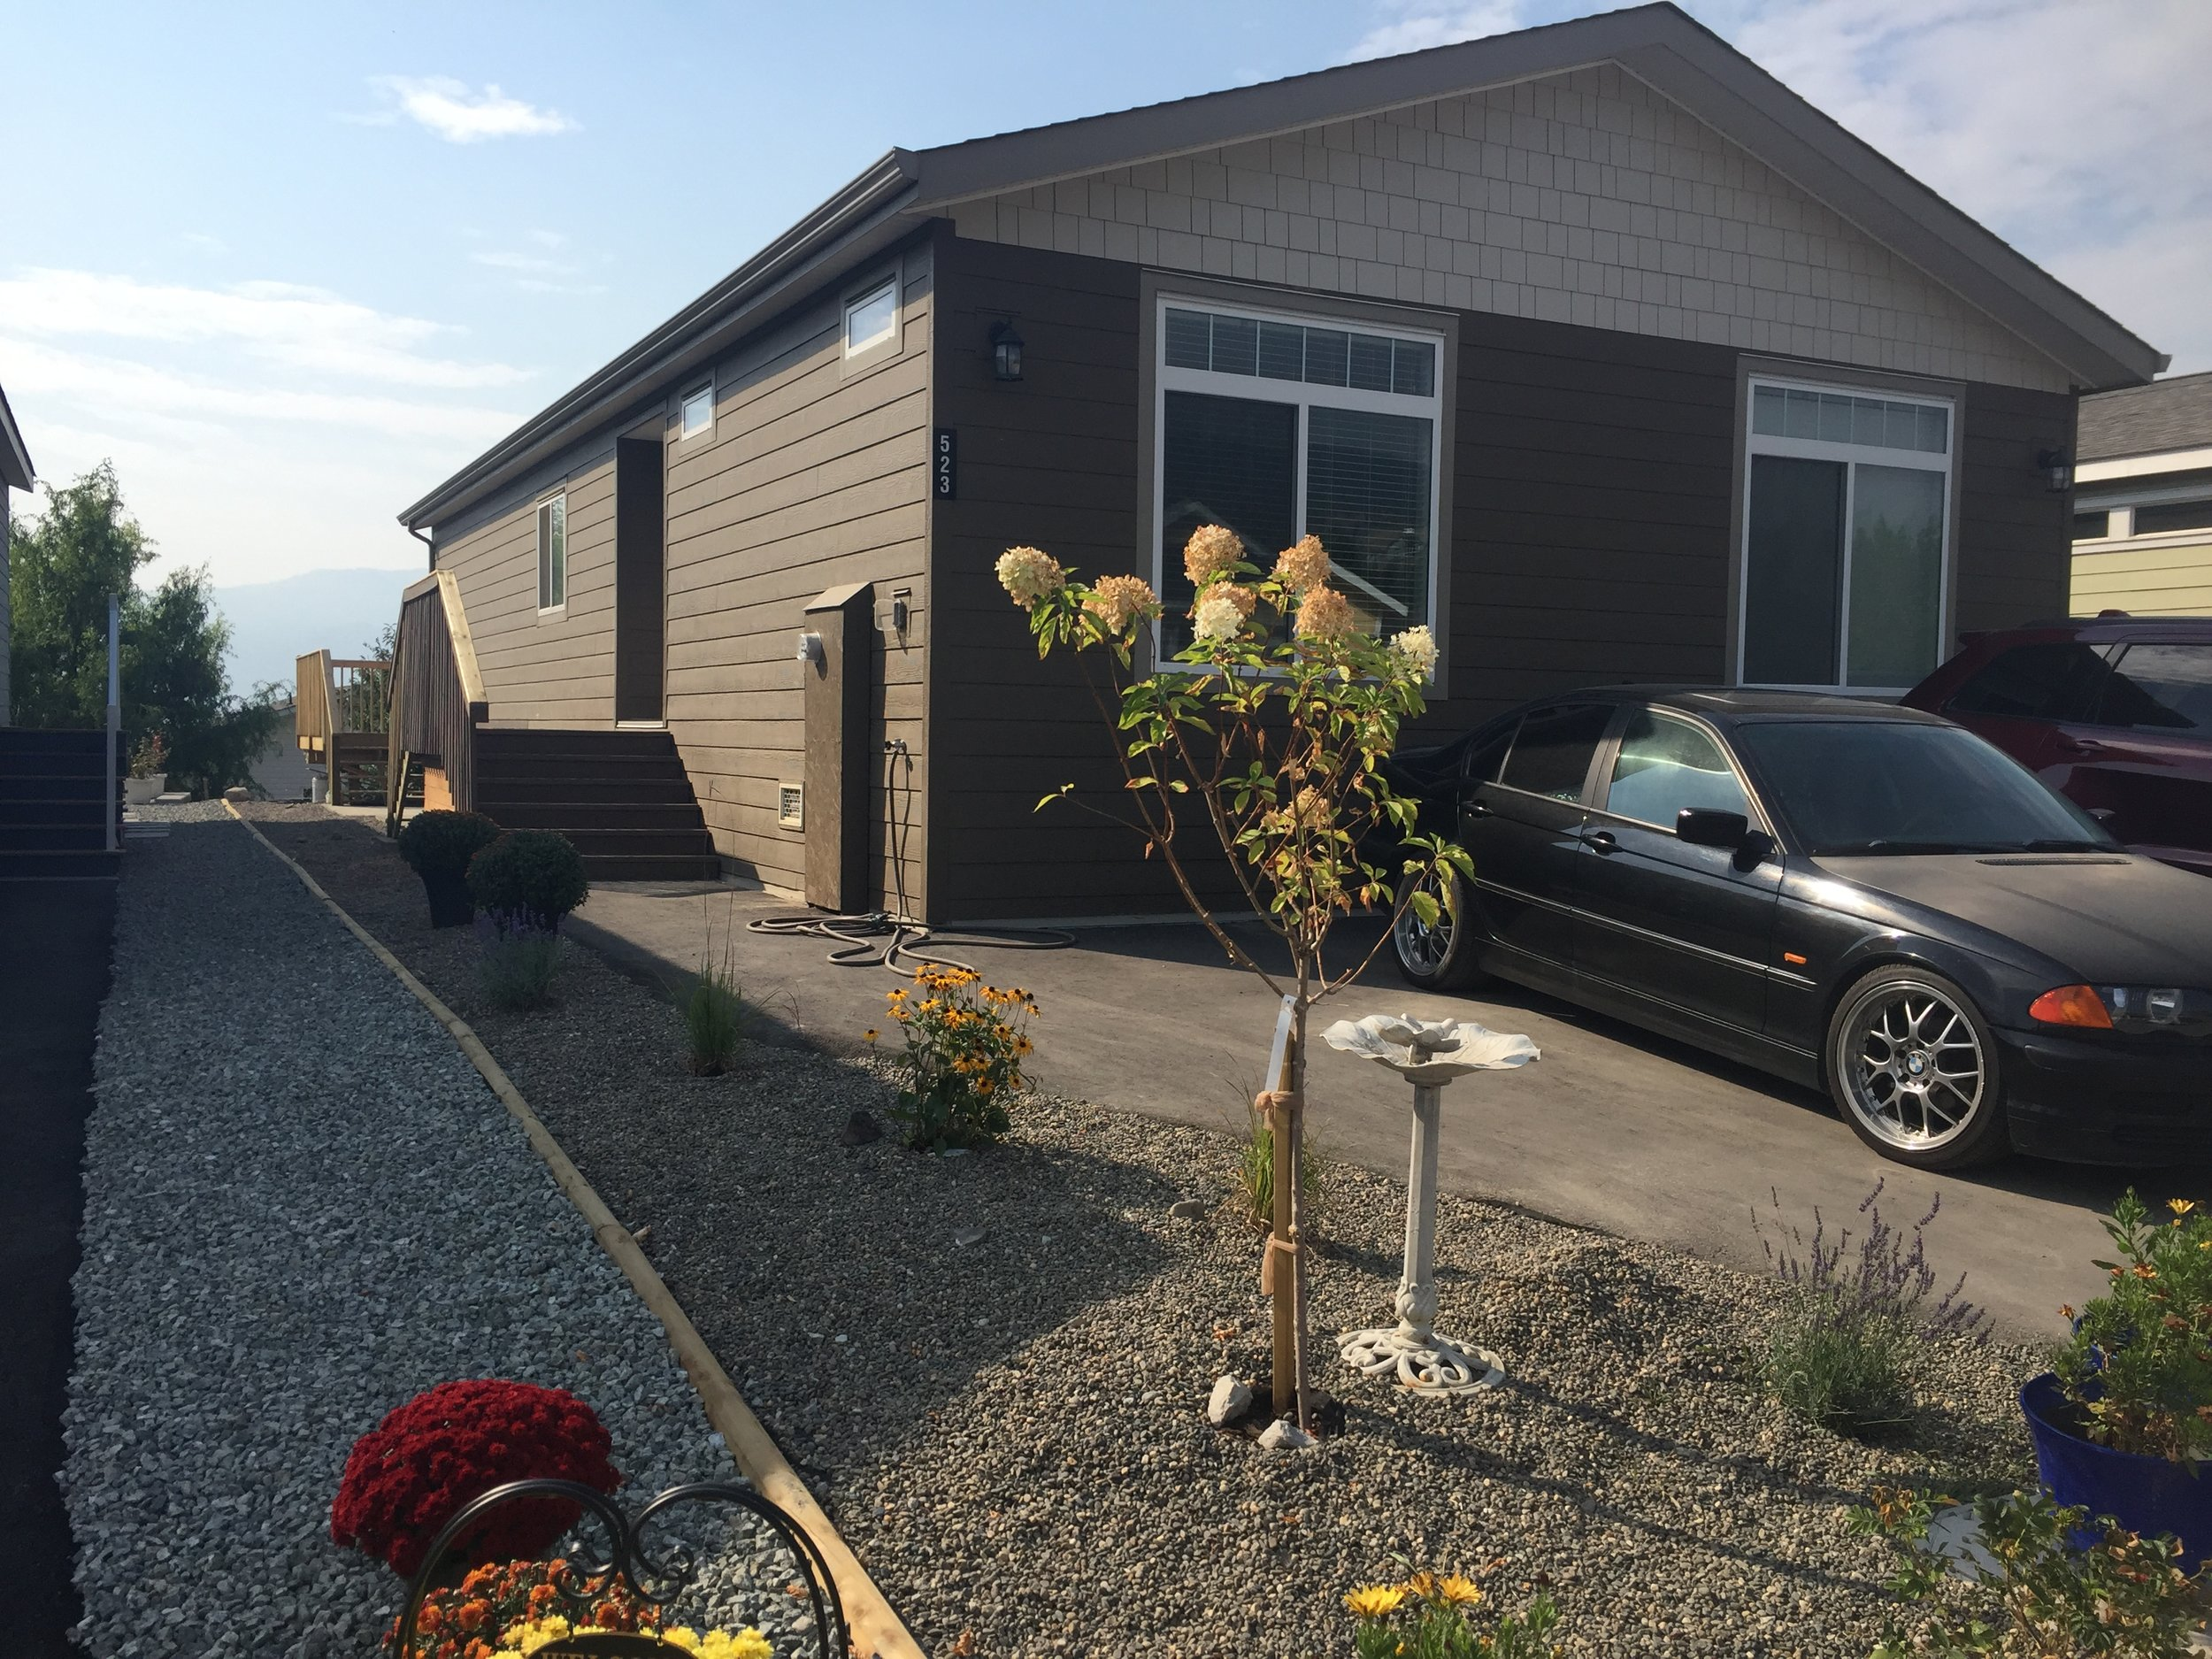 #523-2440 Old Okanagan Hwy - $329,000 - SOLD